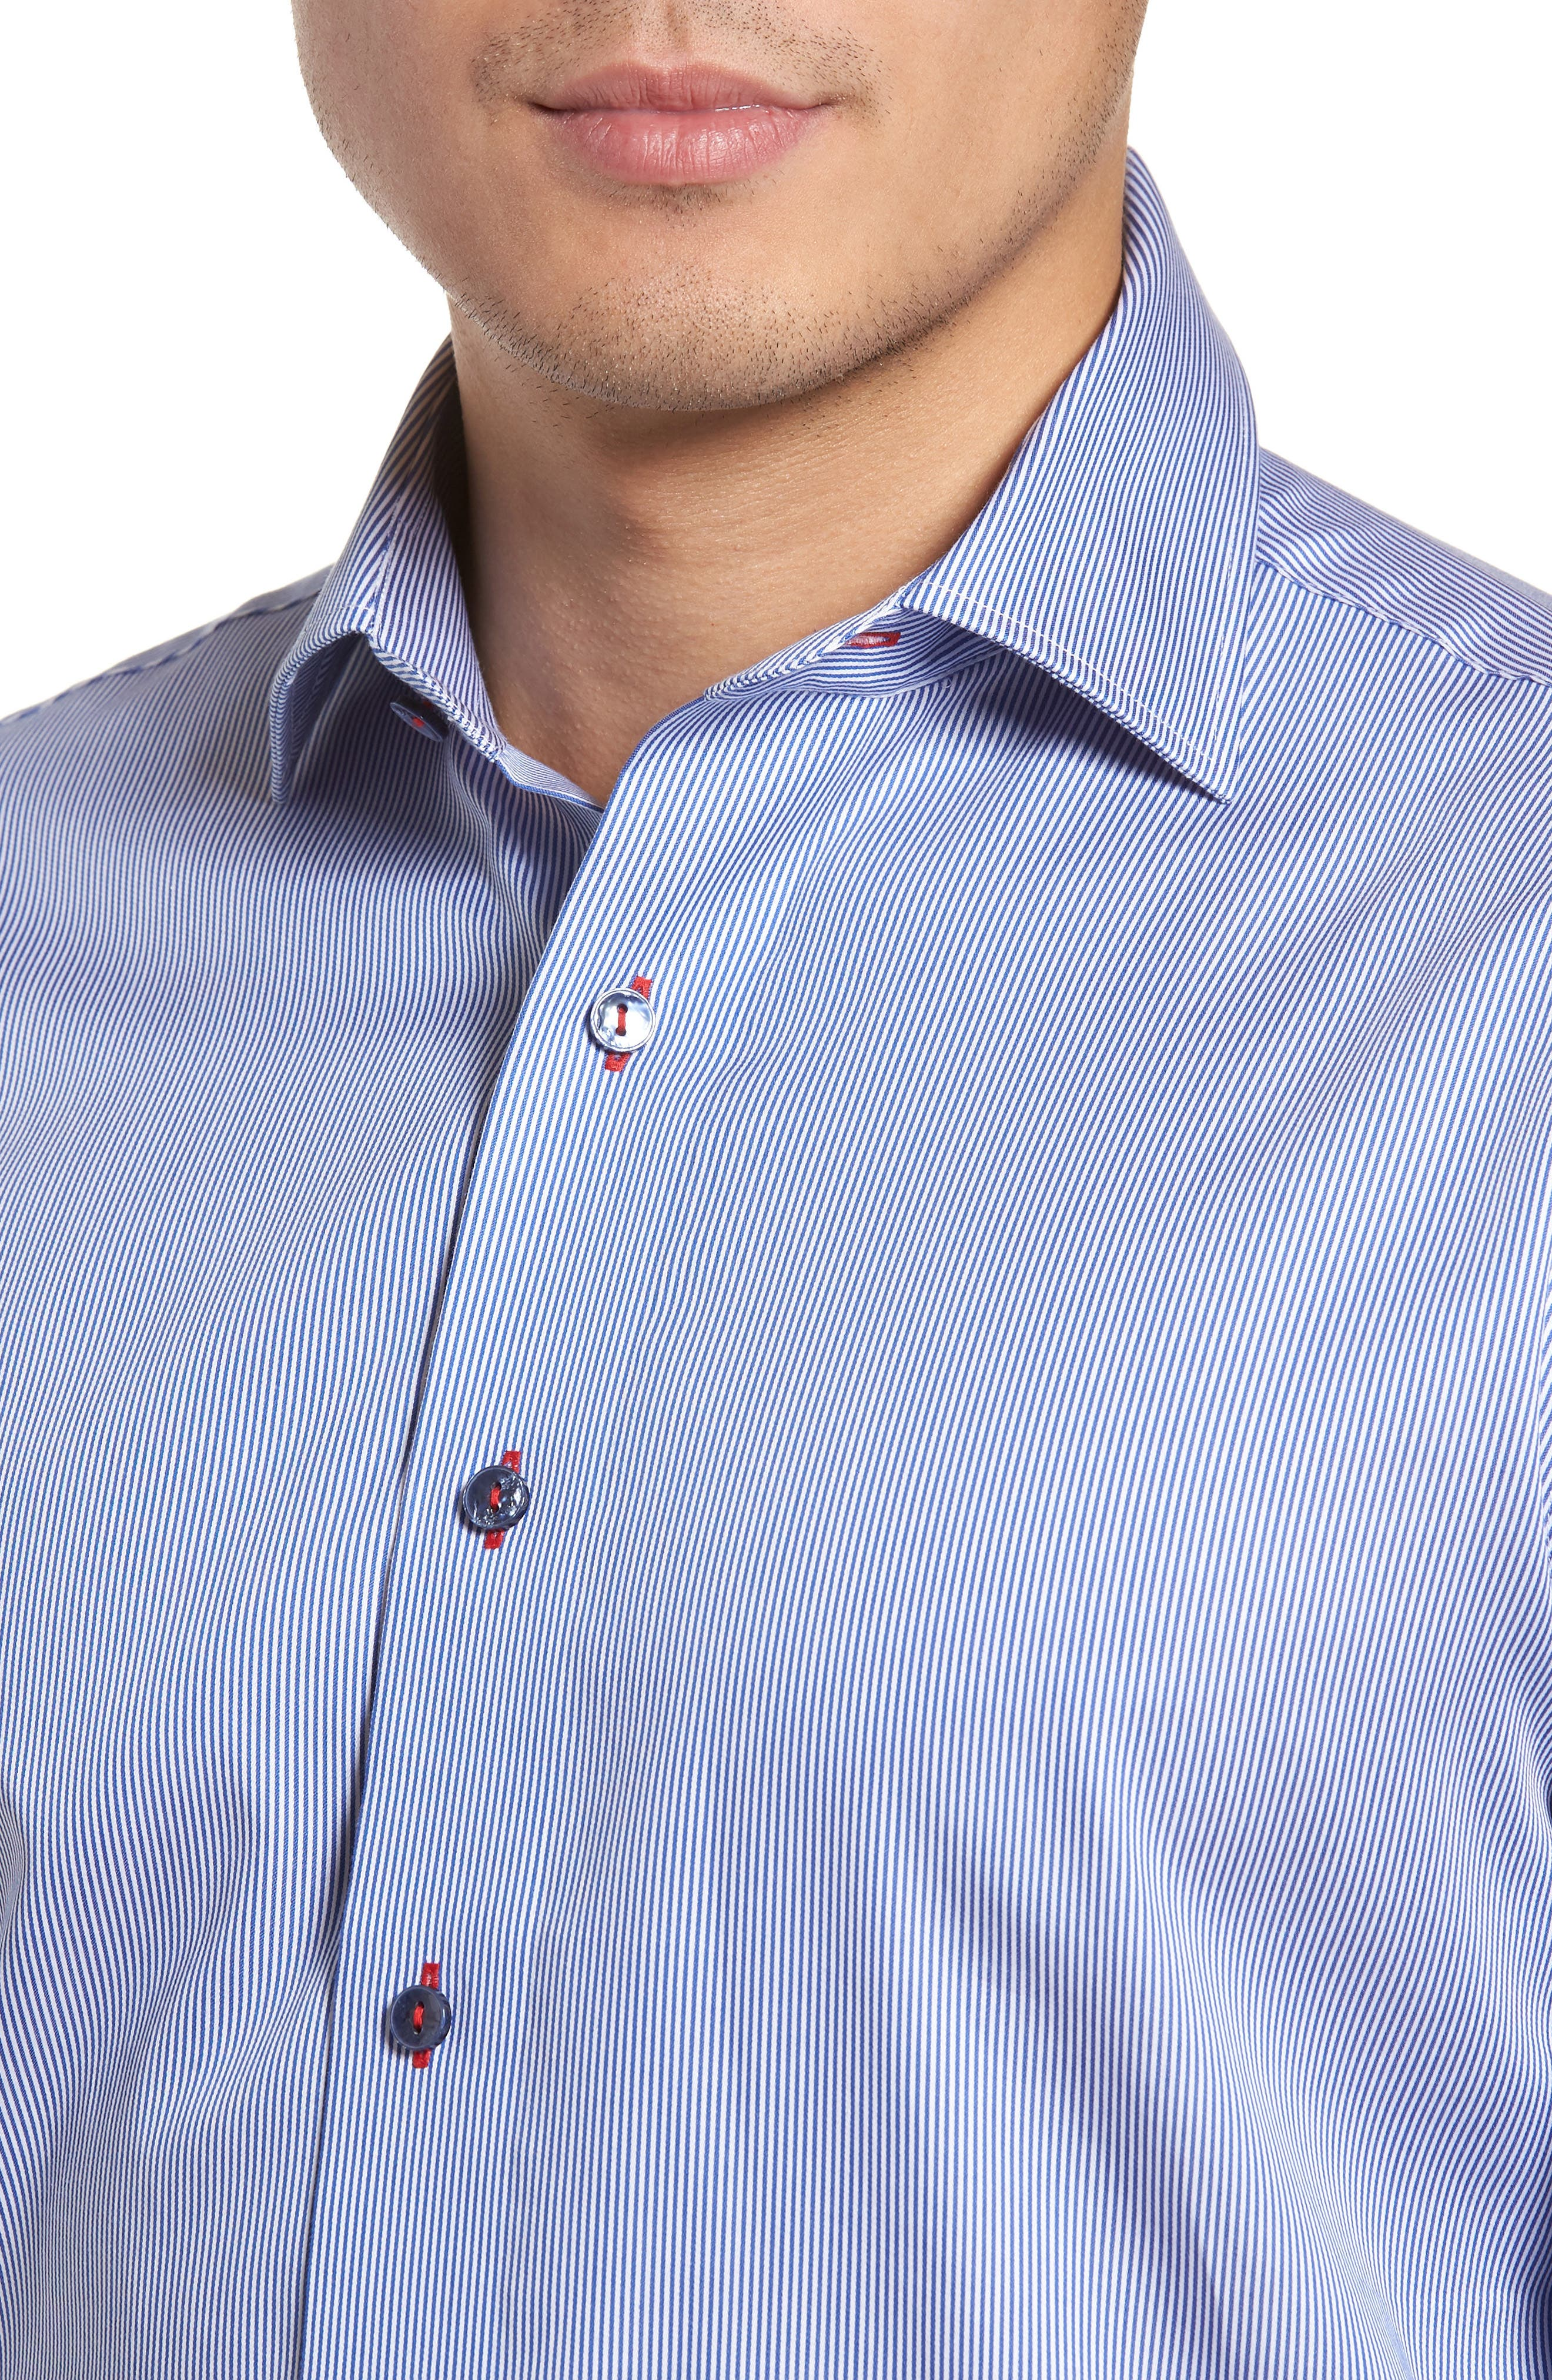 Trim Fit Textured Stripe Dress Shirt,                             Alternate thumbnail 2, color,                             Navy/ White